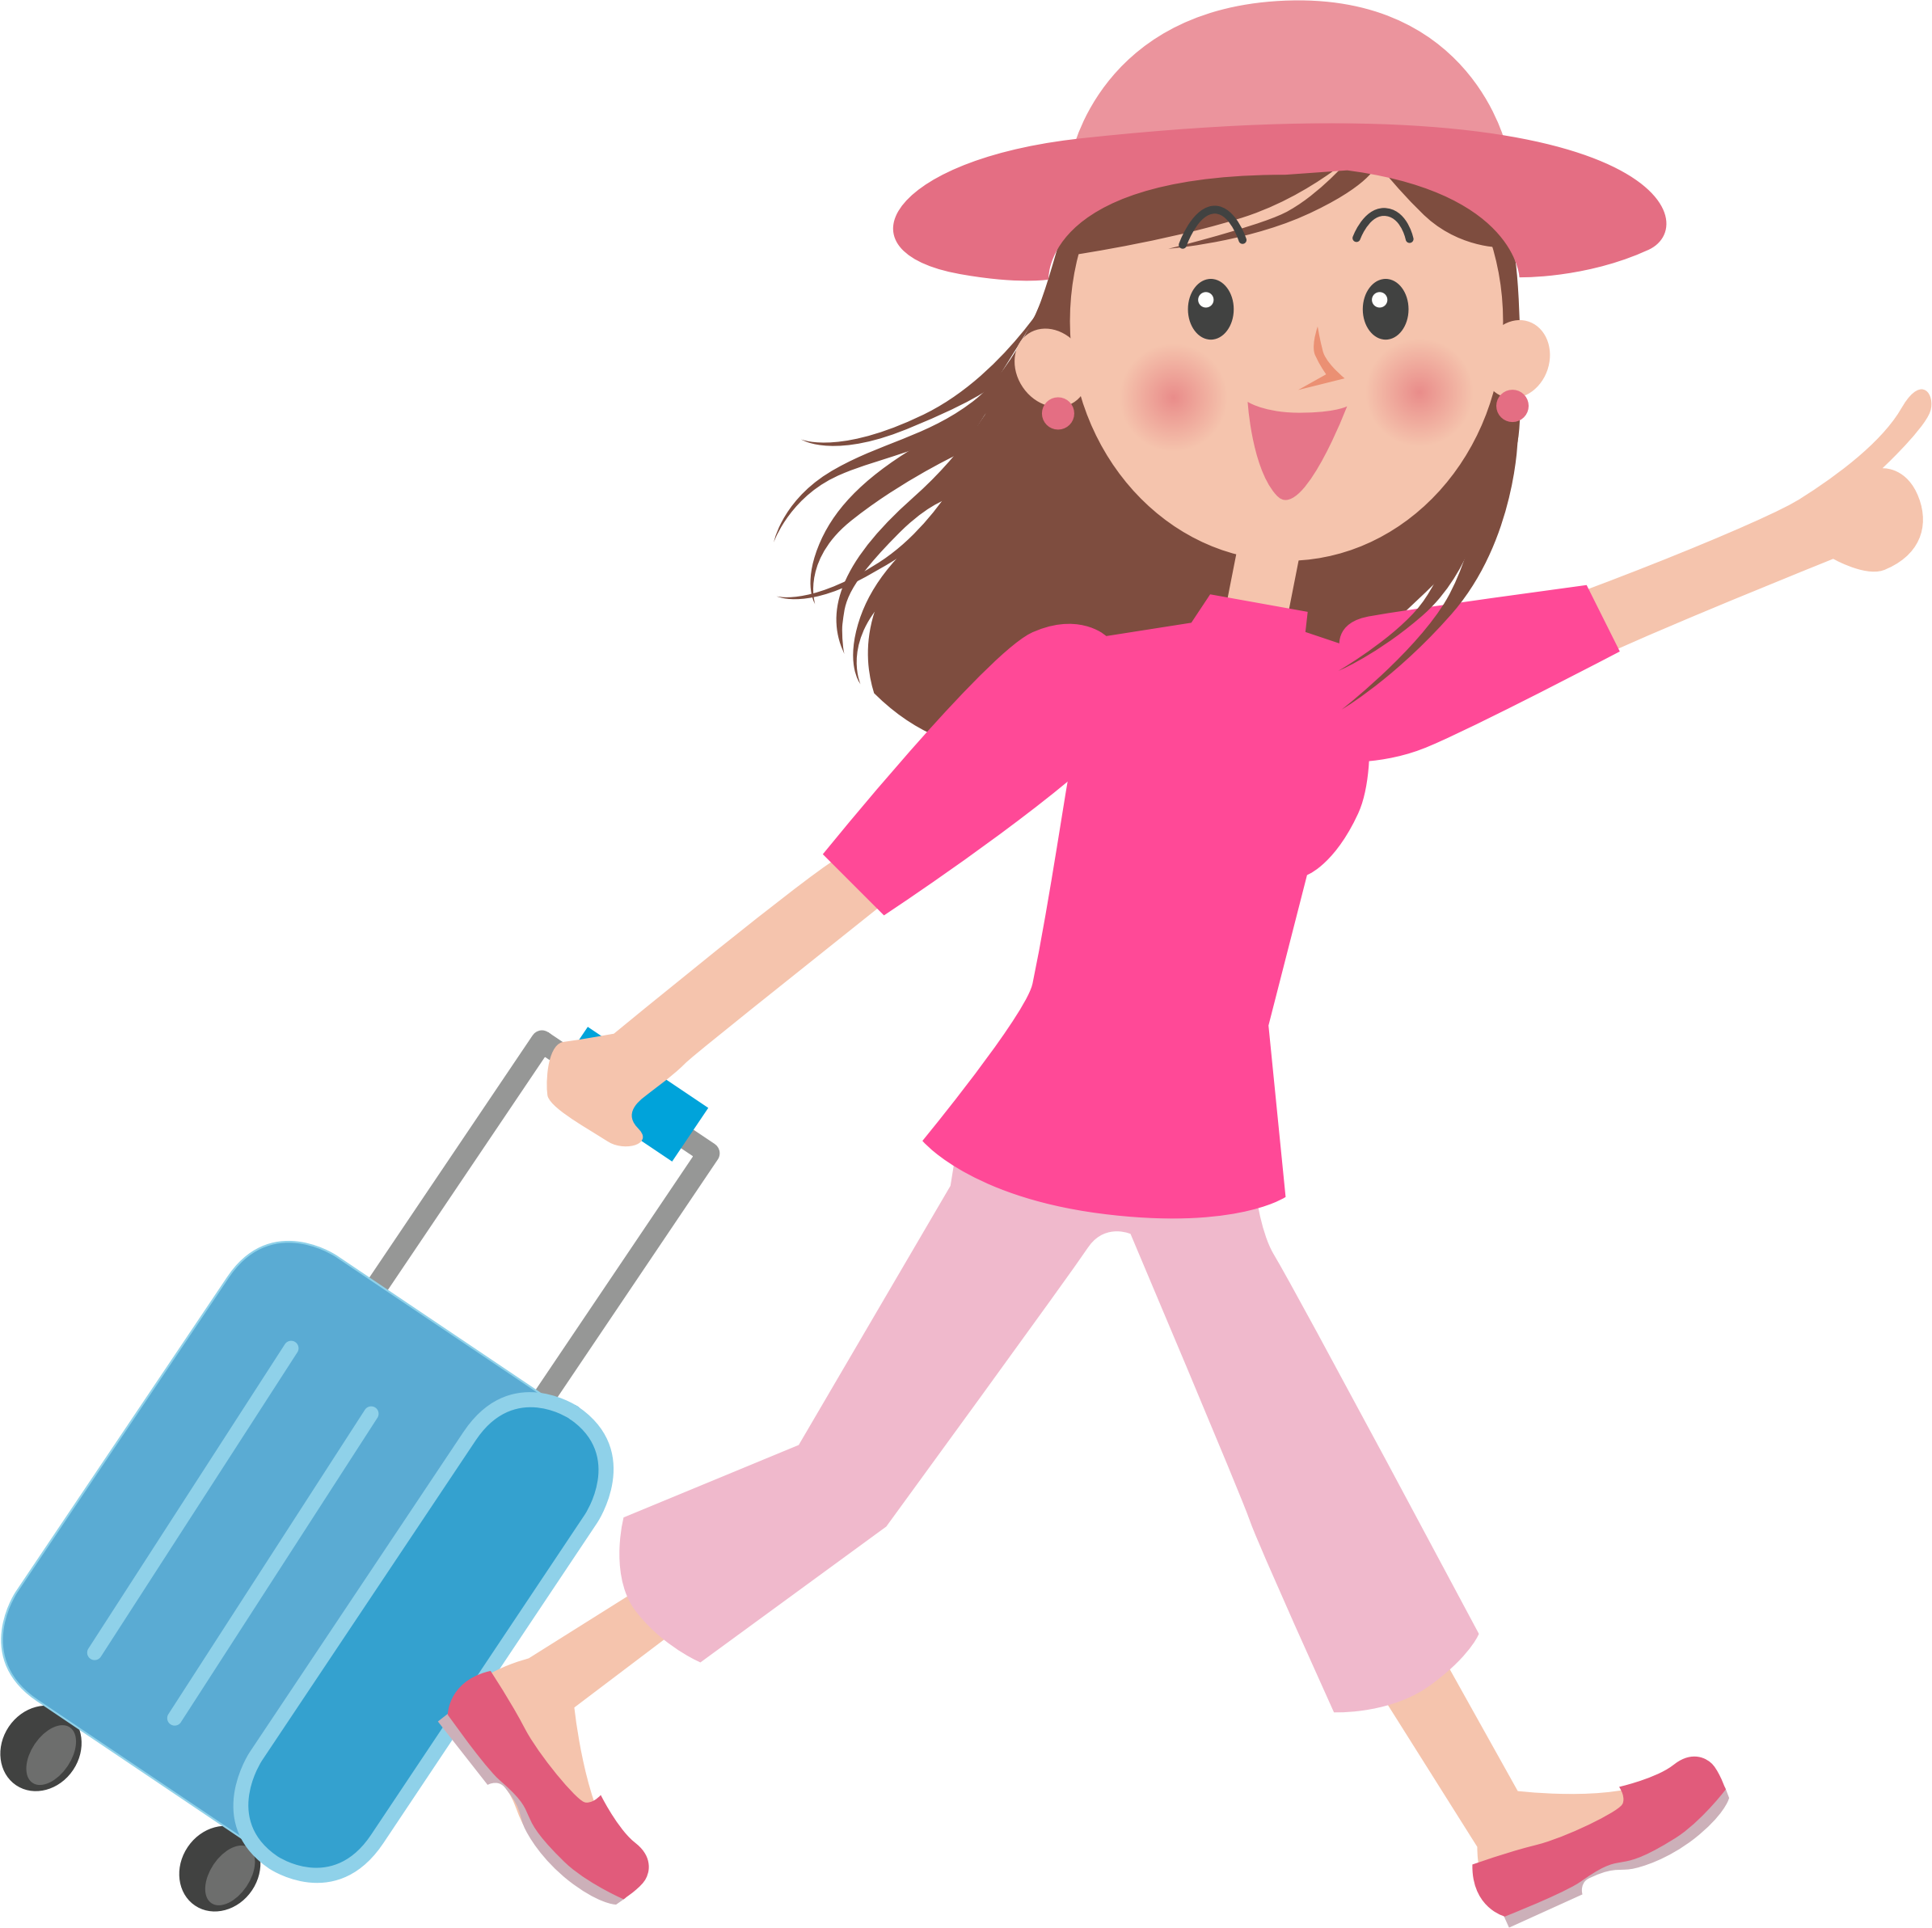 Luggage clipart cartoon. Pulling big image png